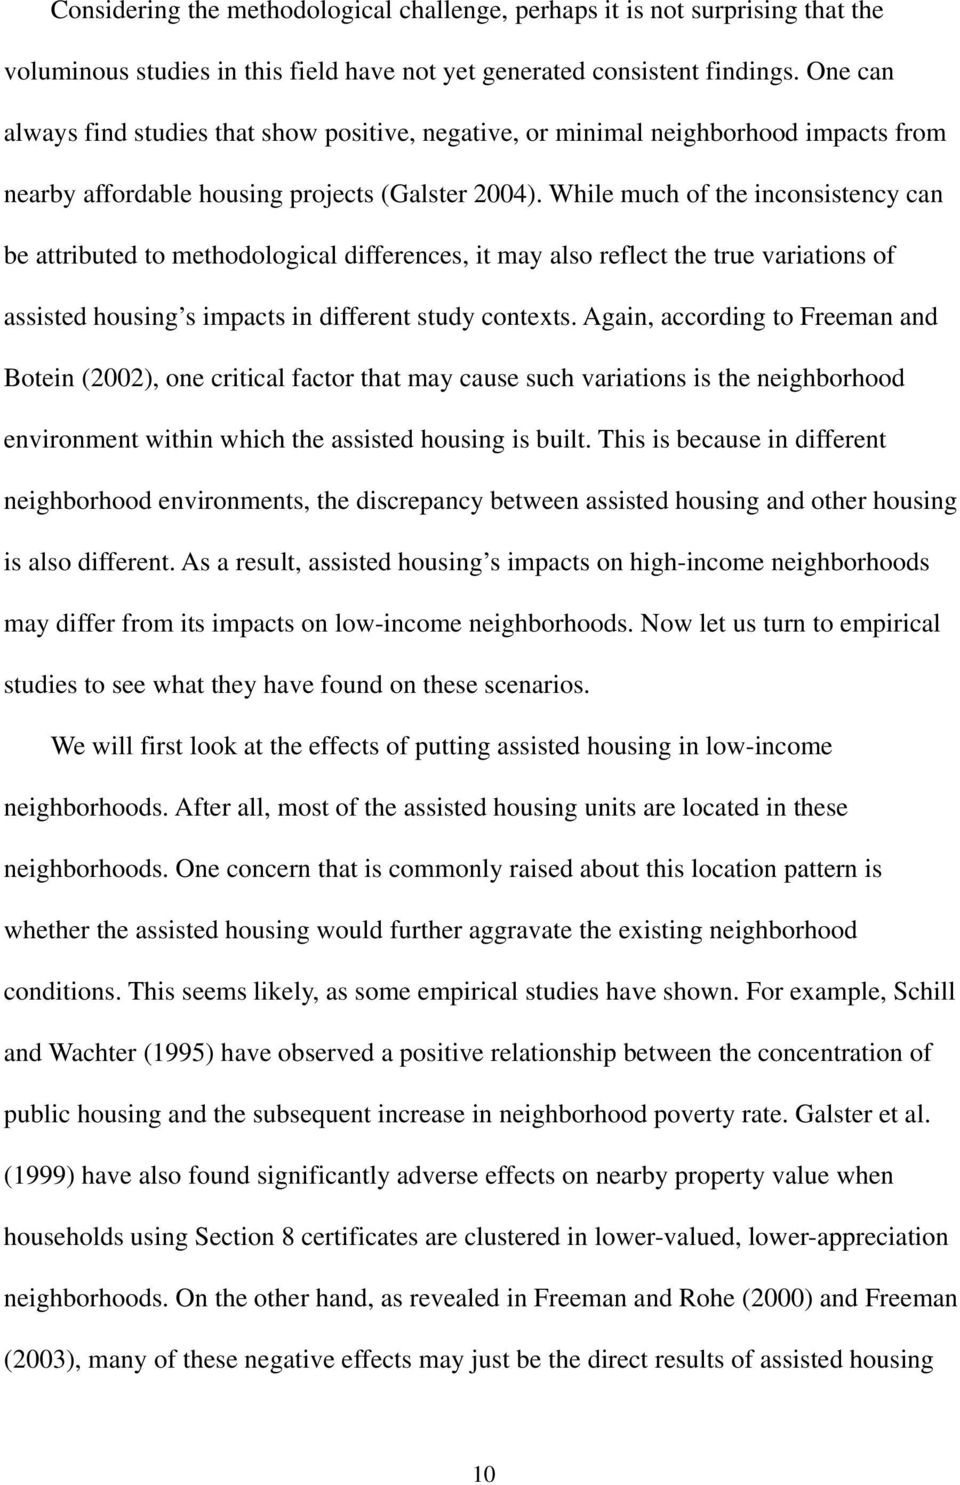 While much of the inconsistency can be attributed to methodological differences, it may also reflect the true variations of assisted housing s impacts in different study contexts.